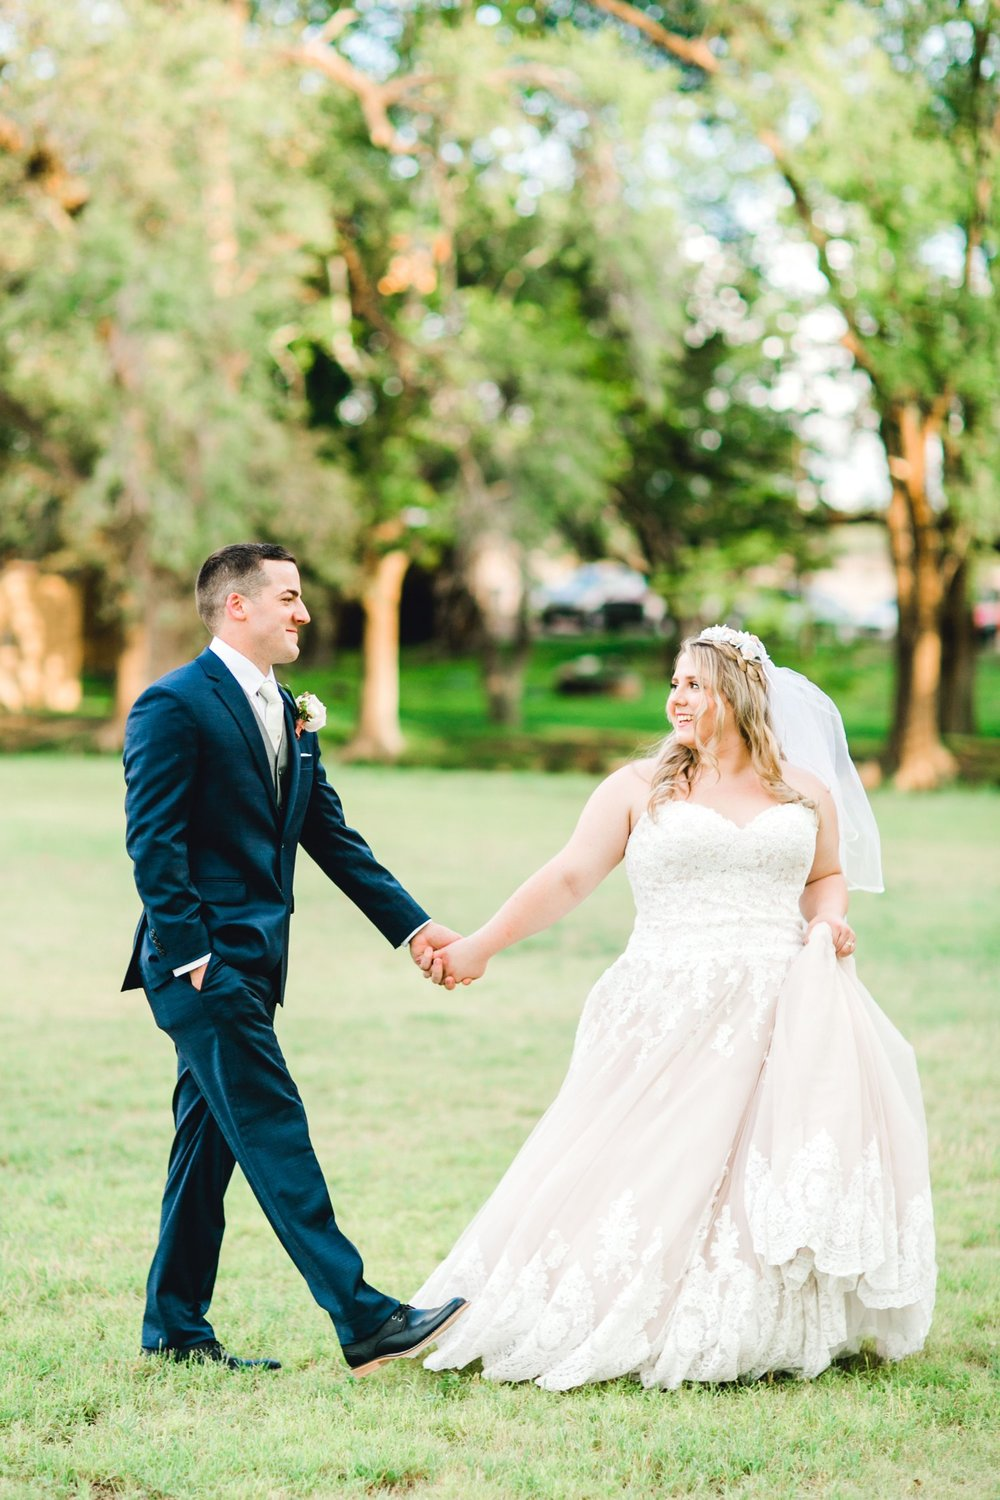 SARAH_AND_GEOFFREY_SHARP_SPIRIT_RANCH_WEDDING_ALLEEJ_LUBBOCK_TX_0110.jpg